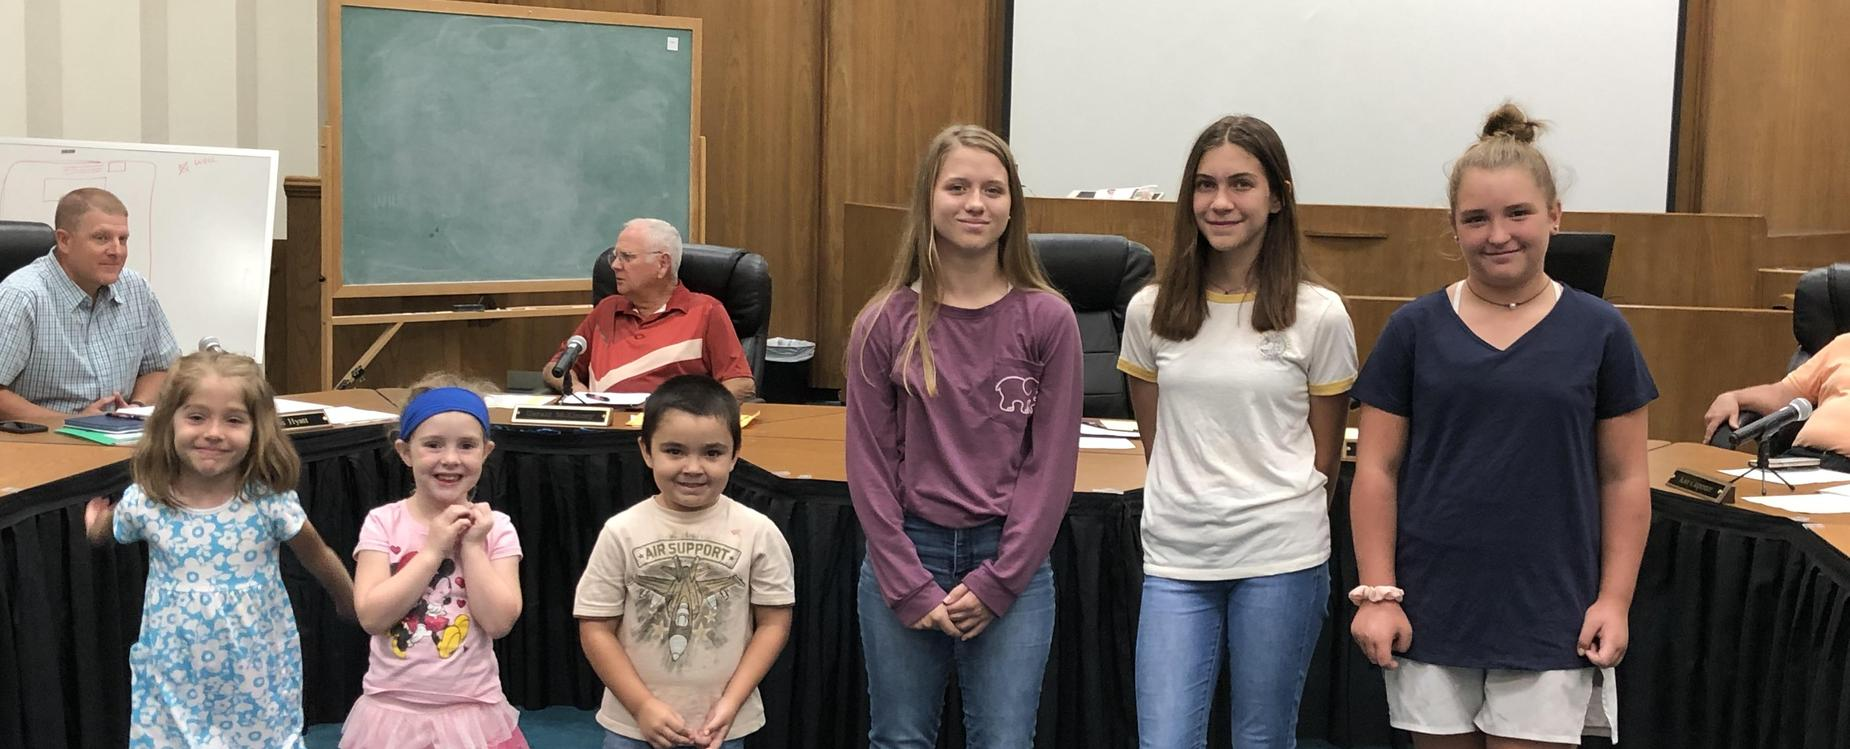 Character Award Recipients for August